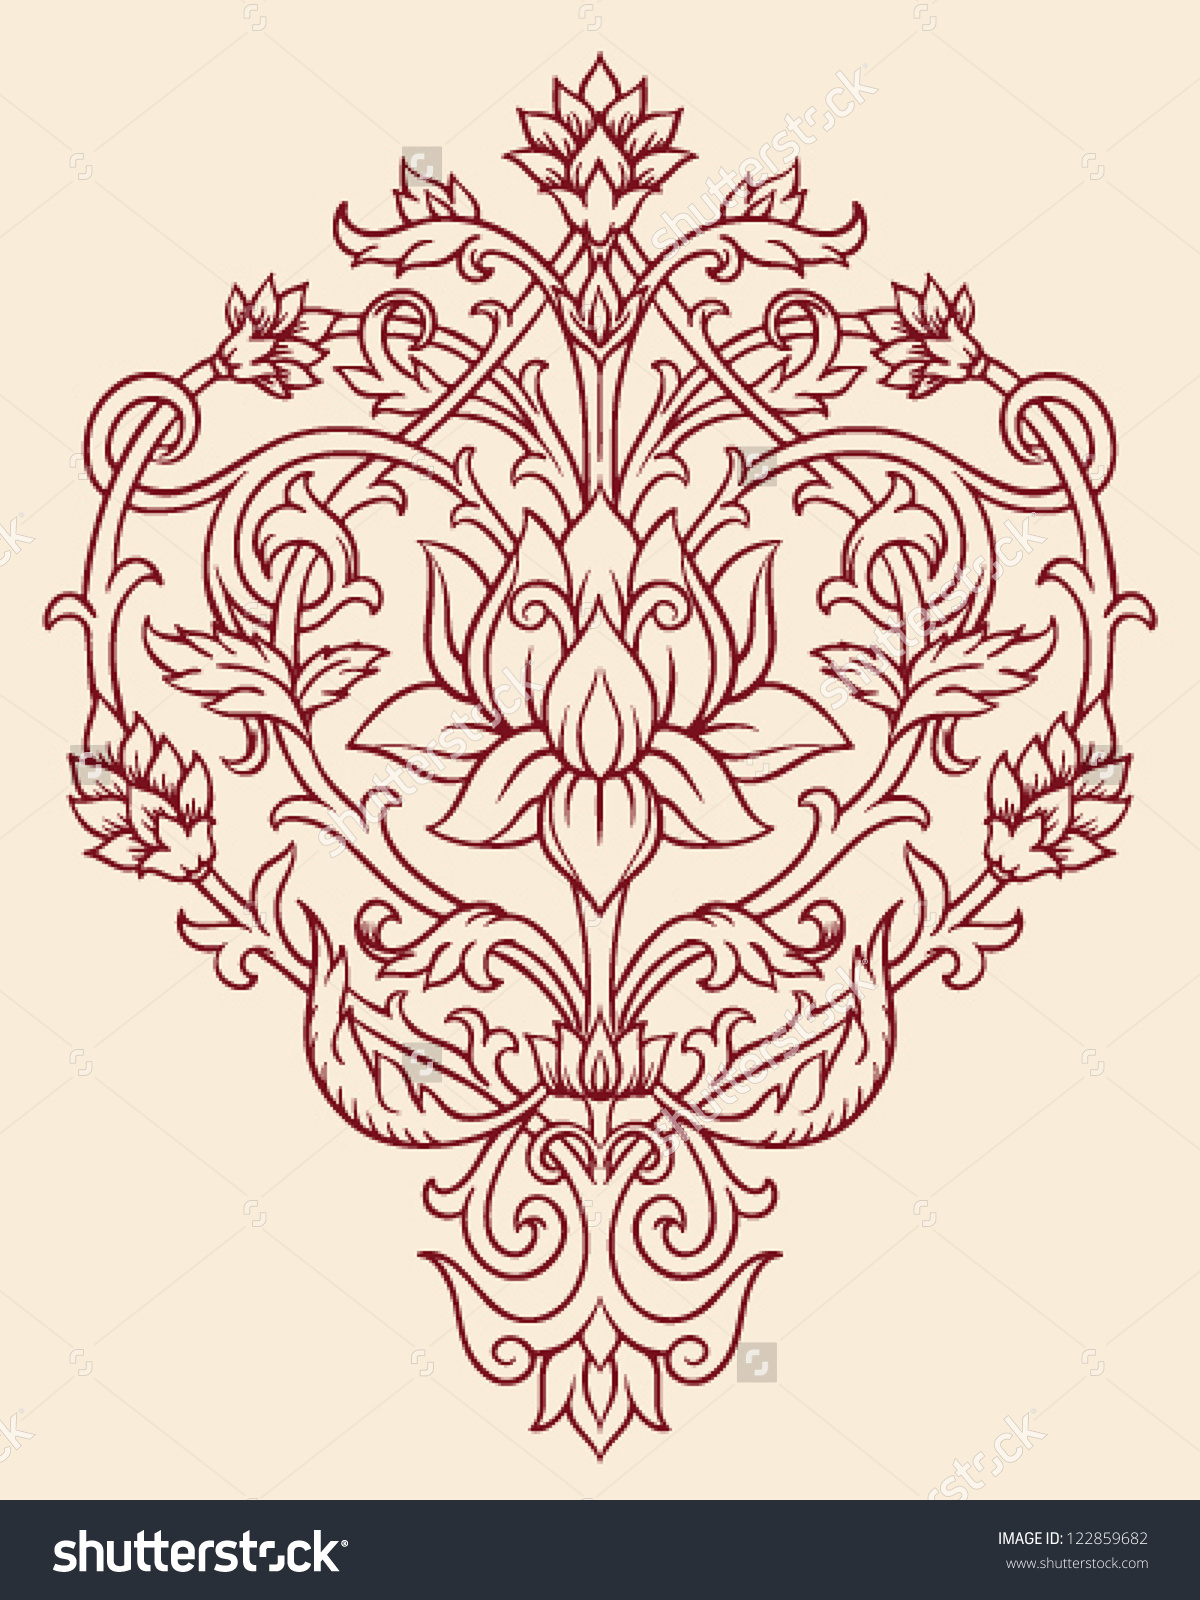 Lotus flower mandala clipart clipground ornate lotus flower vector izmirmasajfo